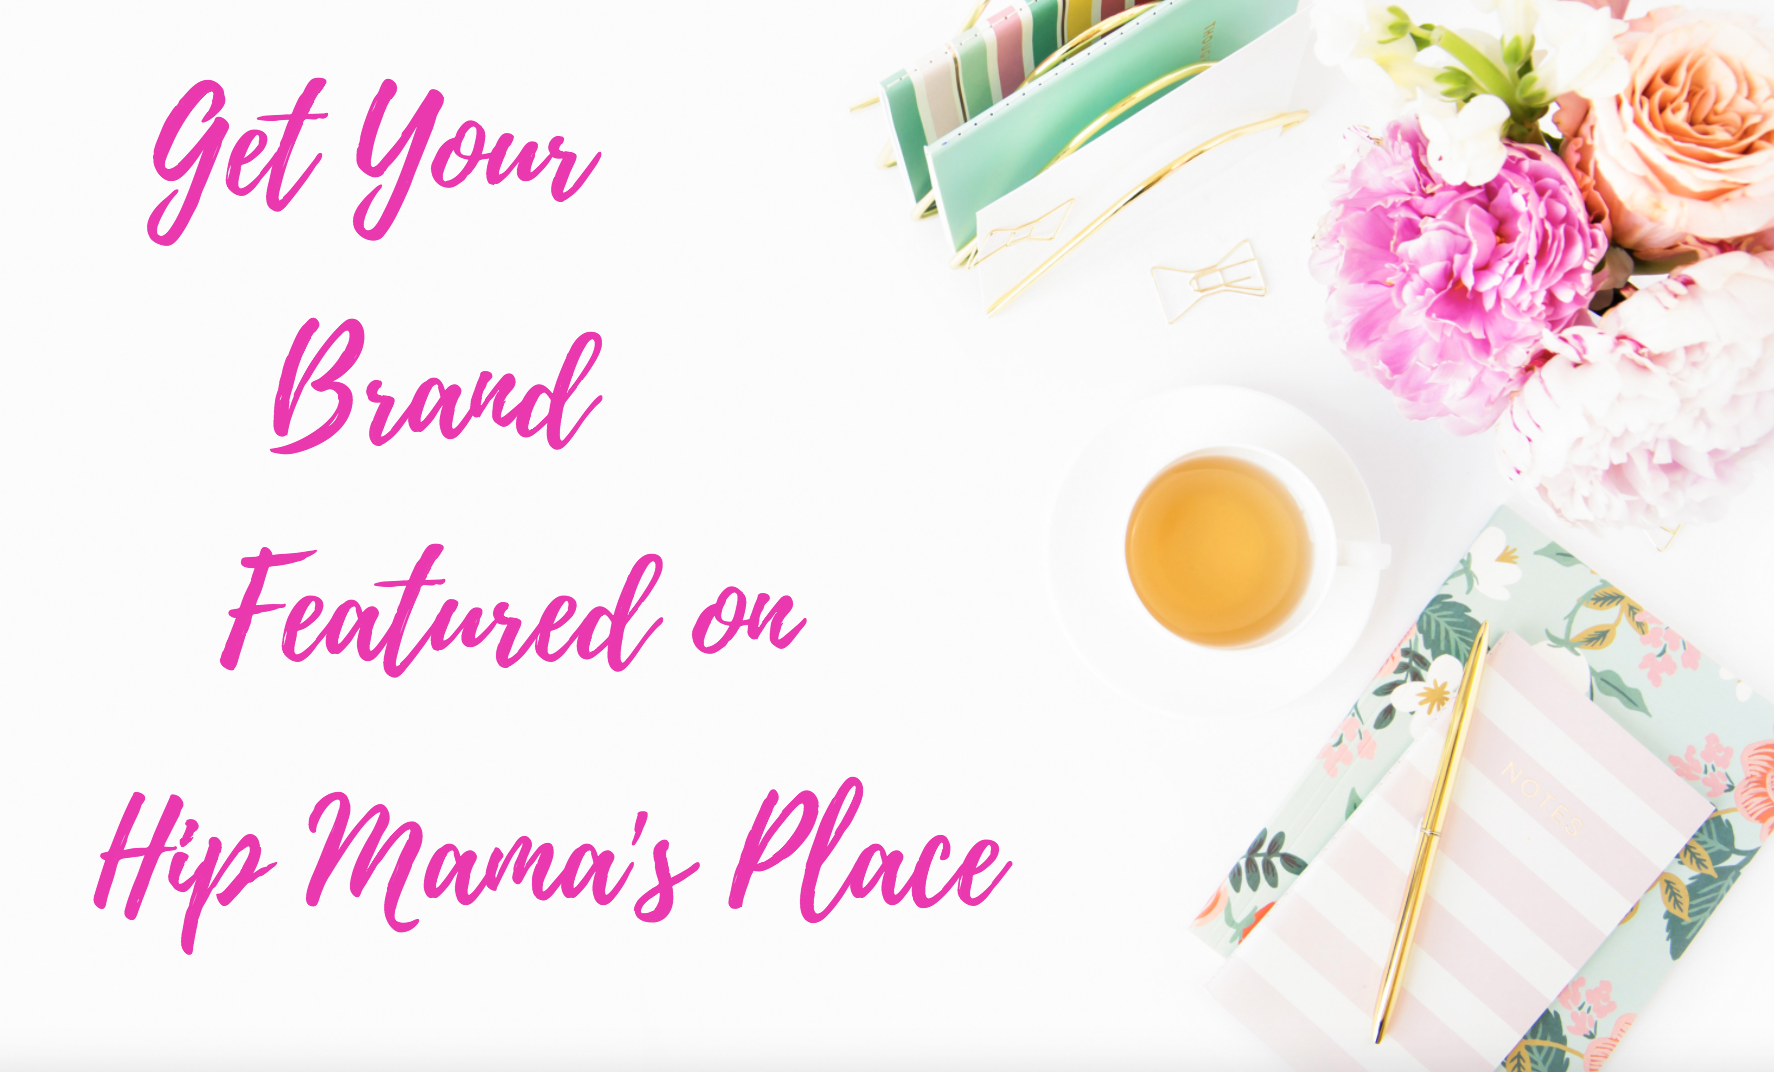 Get your brand featured on Hip Mama's Place!